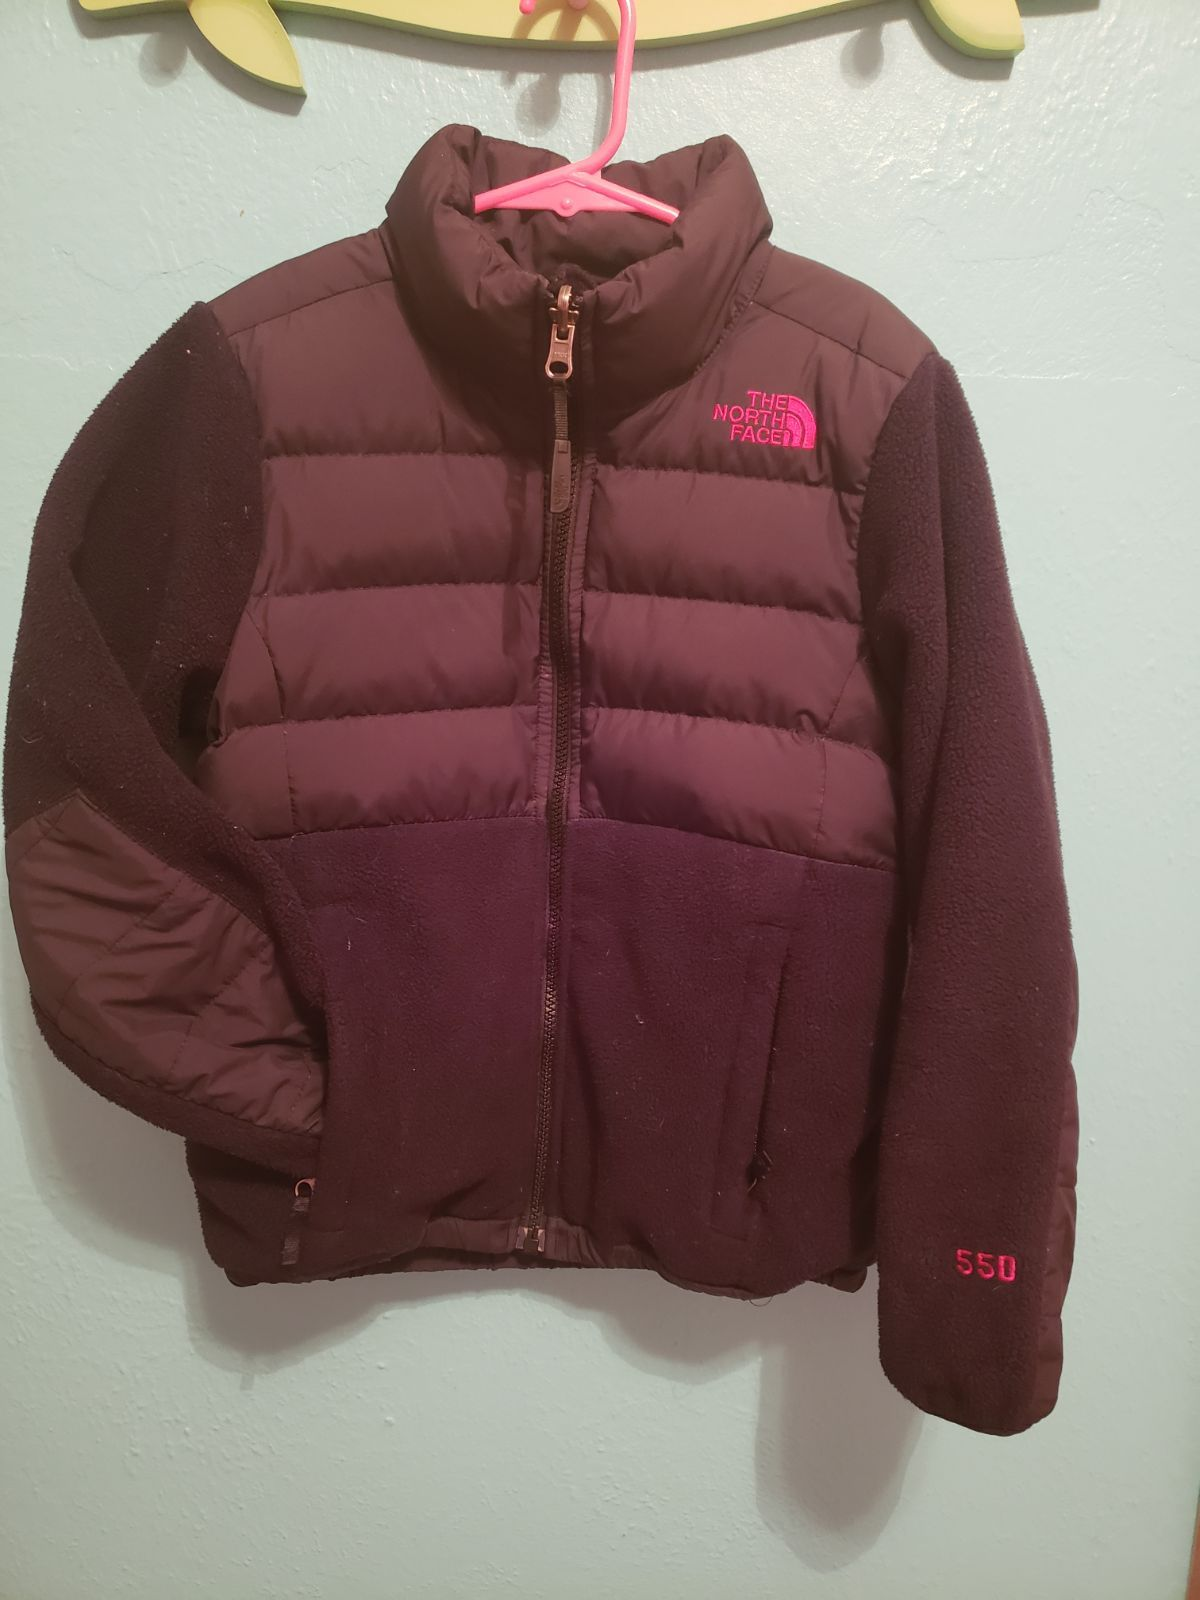 Vguc Black 550 Northface I Loved The Hot Pink Nf Symbol Nothing Wrong With It Daughter Just Doesnt Wear It The 6th North Face Coat The North Face One Pic [ 1600 x 1200 Pixel ]